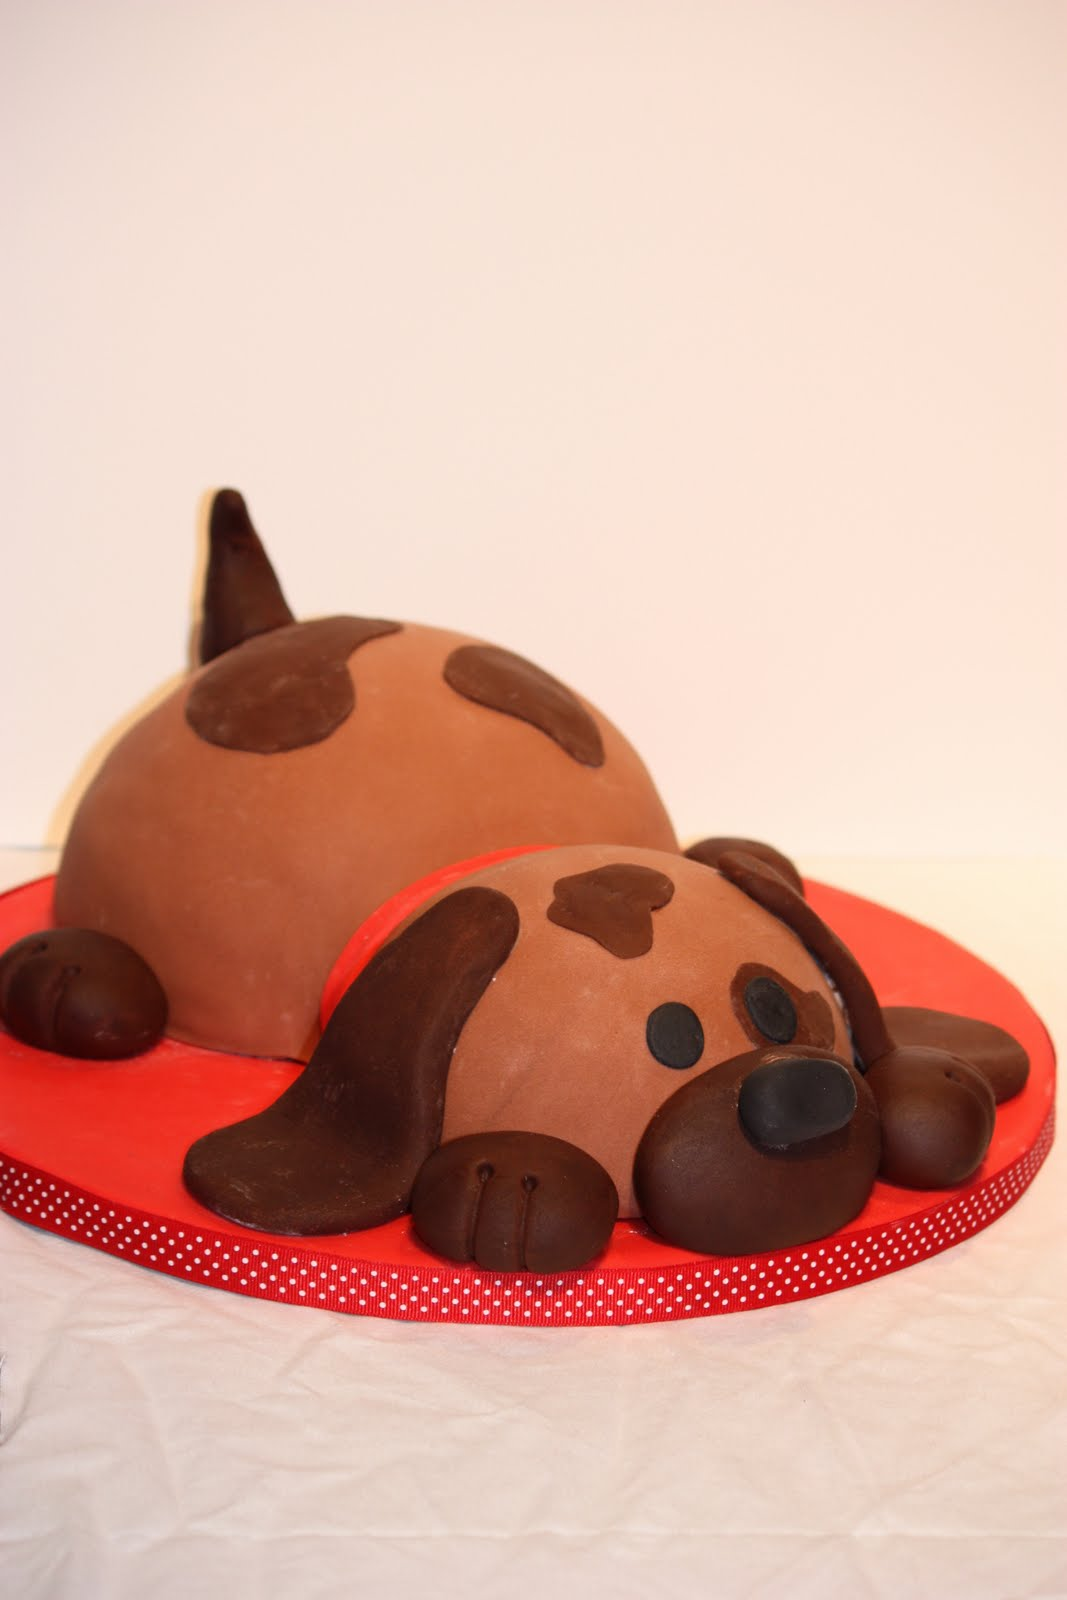 HEB Cakes Designs http://whimsicalbydesign.blogspot.com/2011/03/puppy-dog-birthday-cake.html